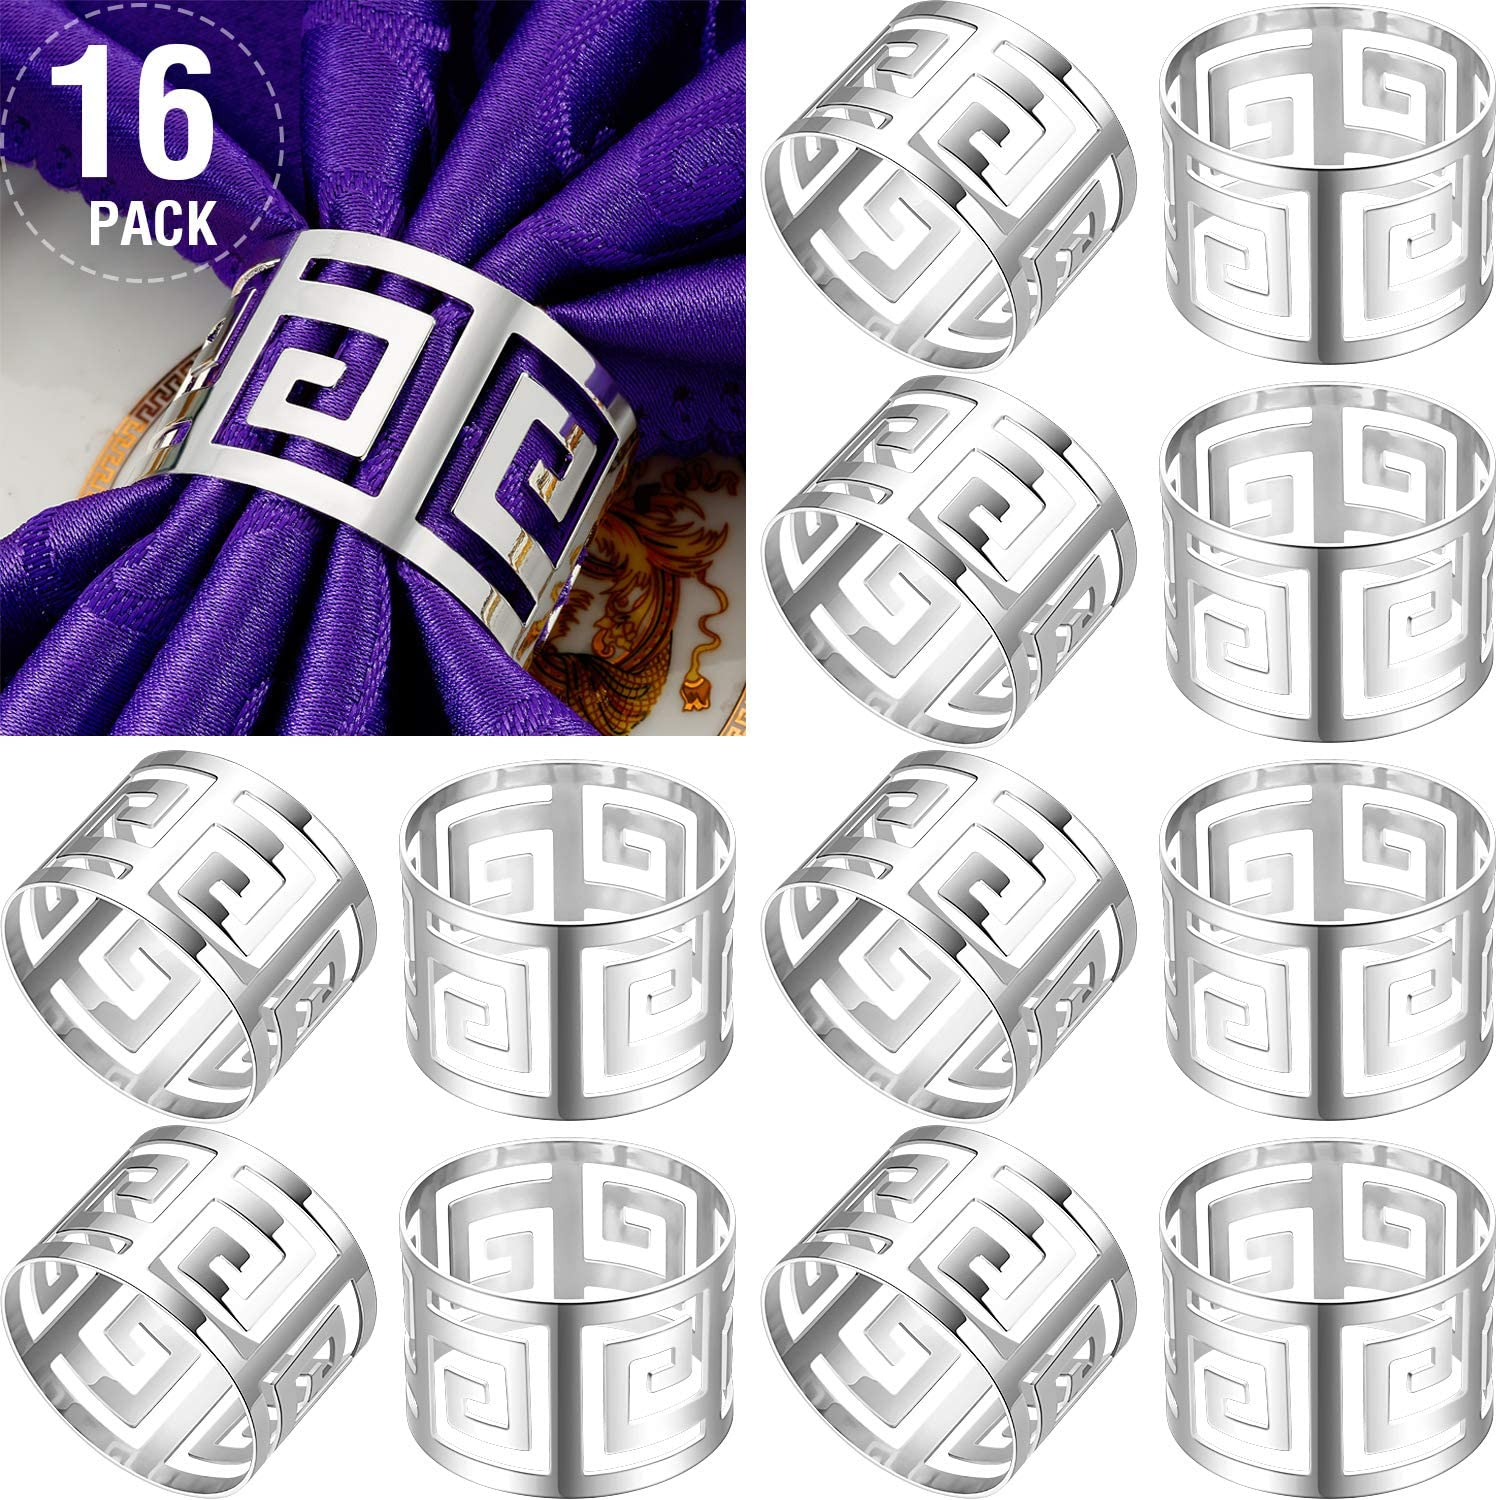 16 Packs Hollow Out Napkin Rings Holders Serviette Buckle Holder Exquisite Household Napkin Holder Adornment for Wedding Christmas Thanksgiving Party Dinner Table Decoration (Silver)